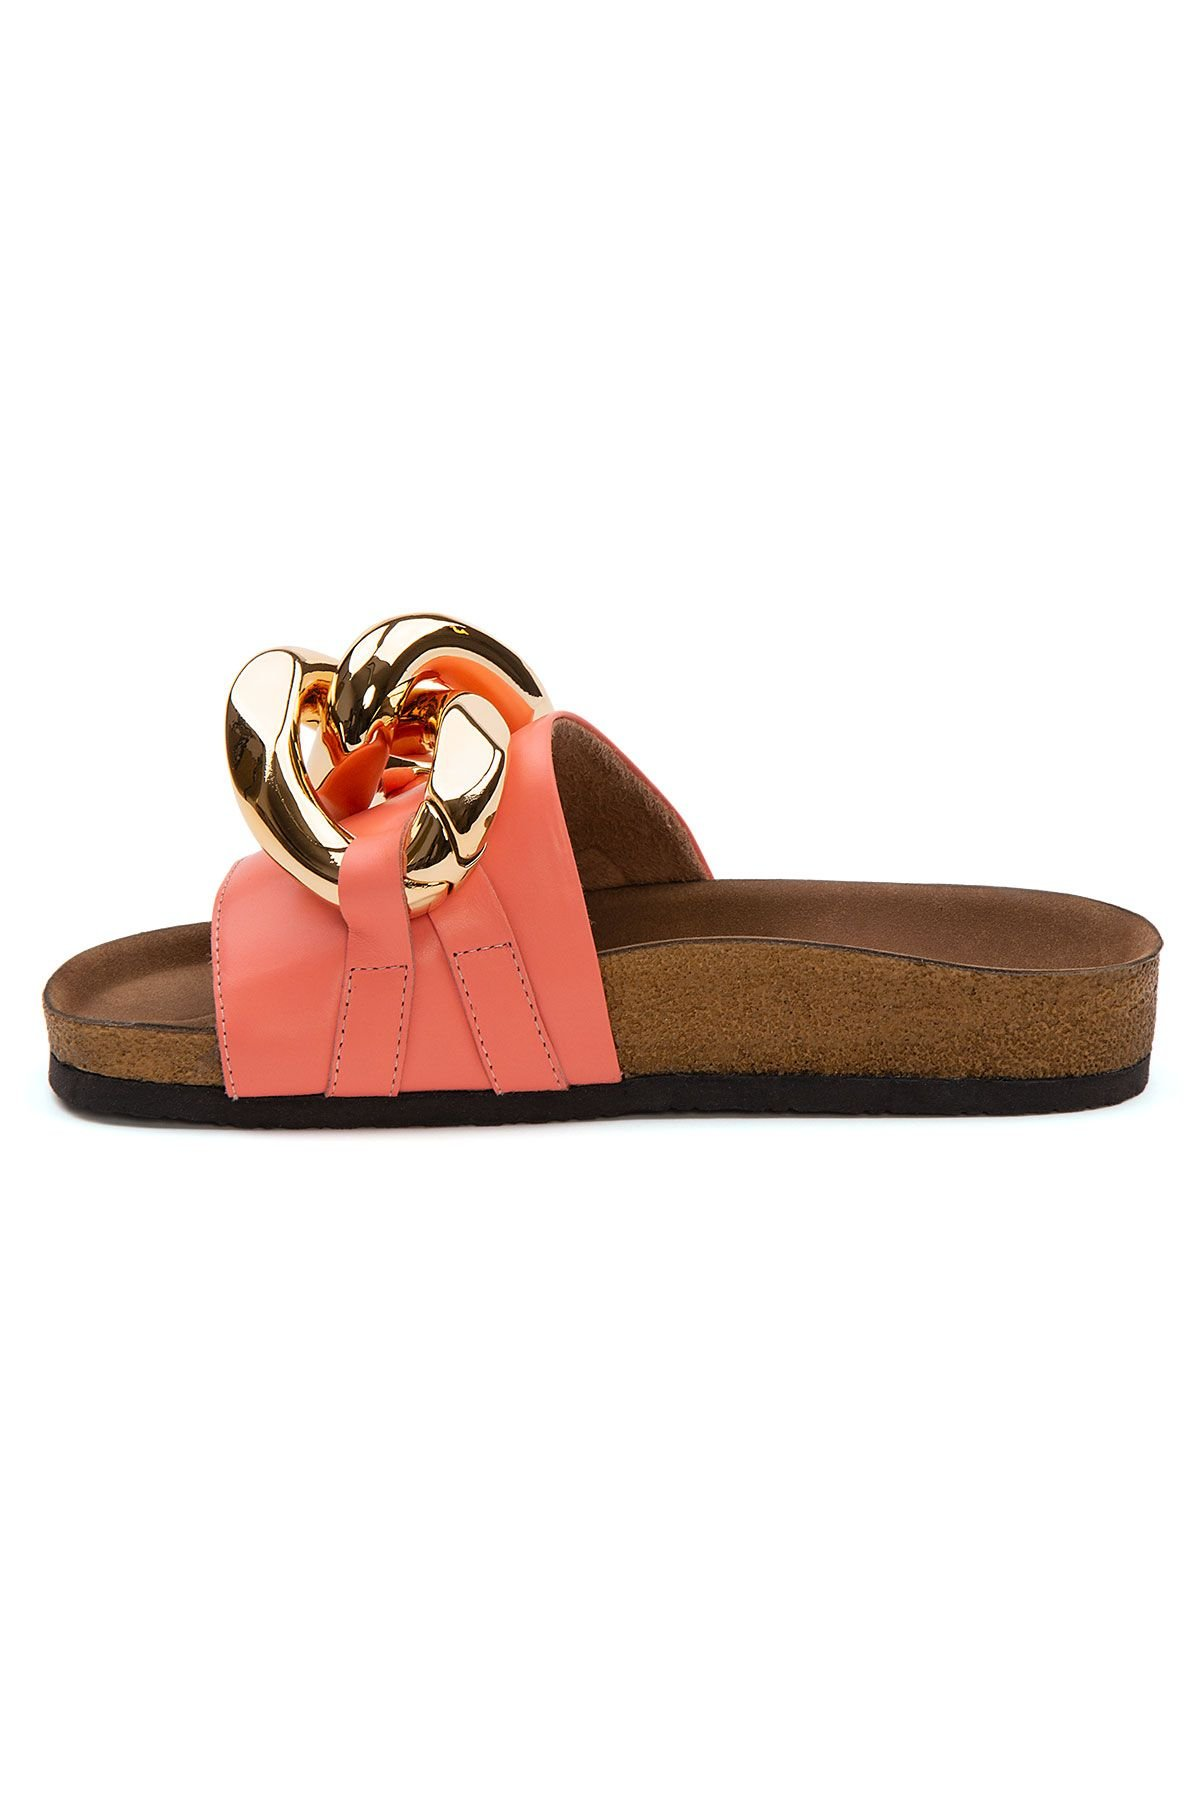 Pegia Women's Chain Detailed Leather Slippers 215536 Pink